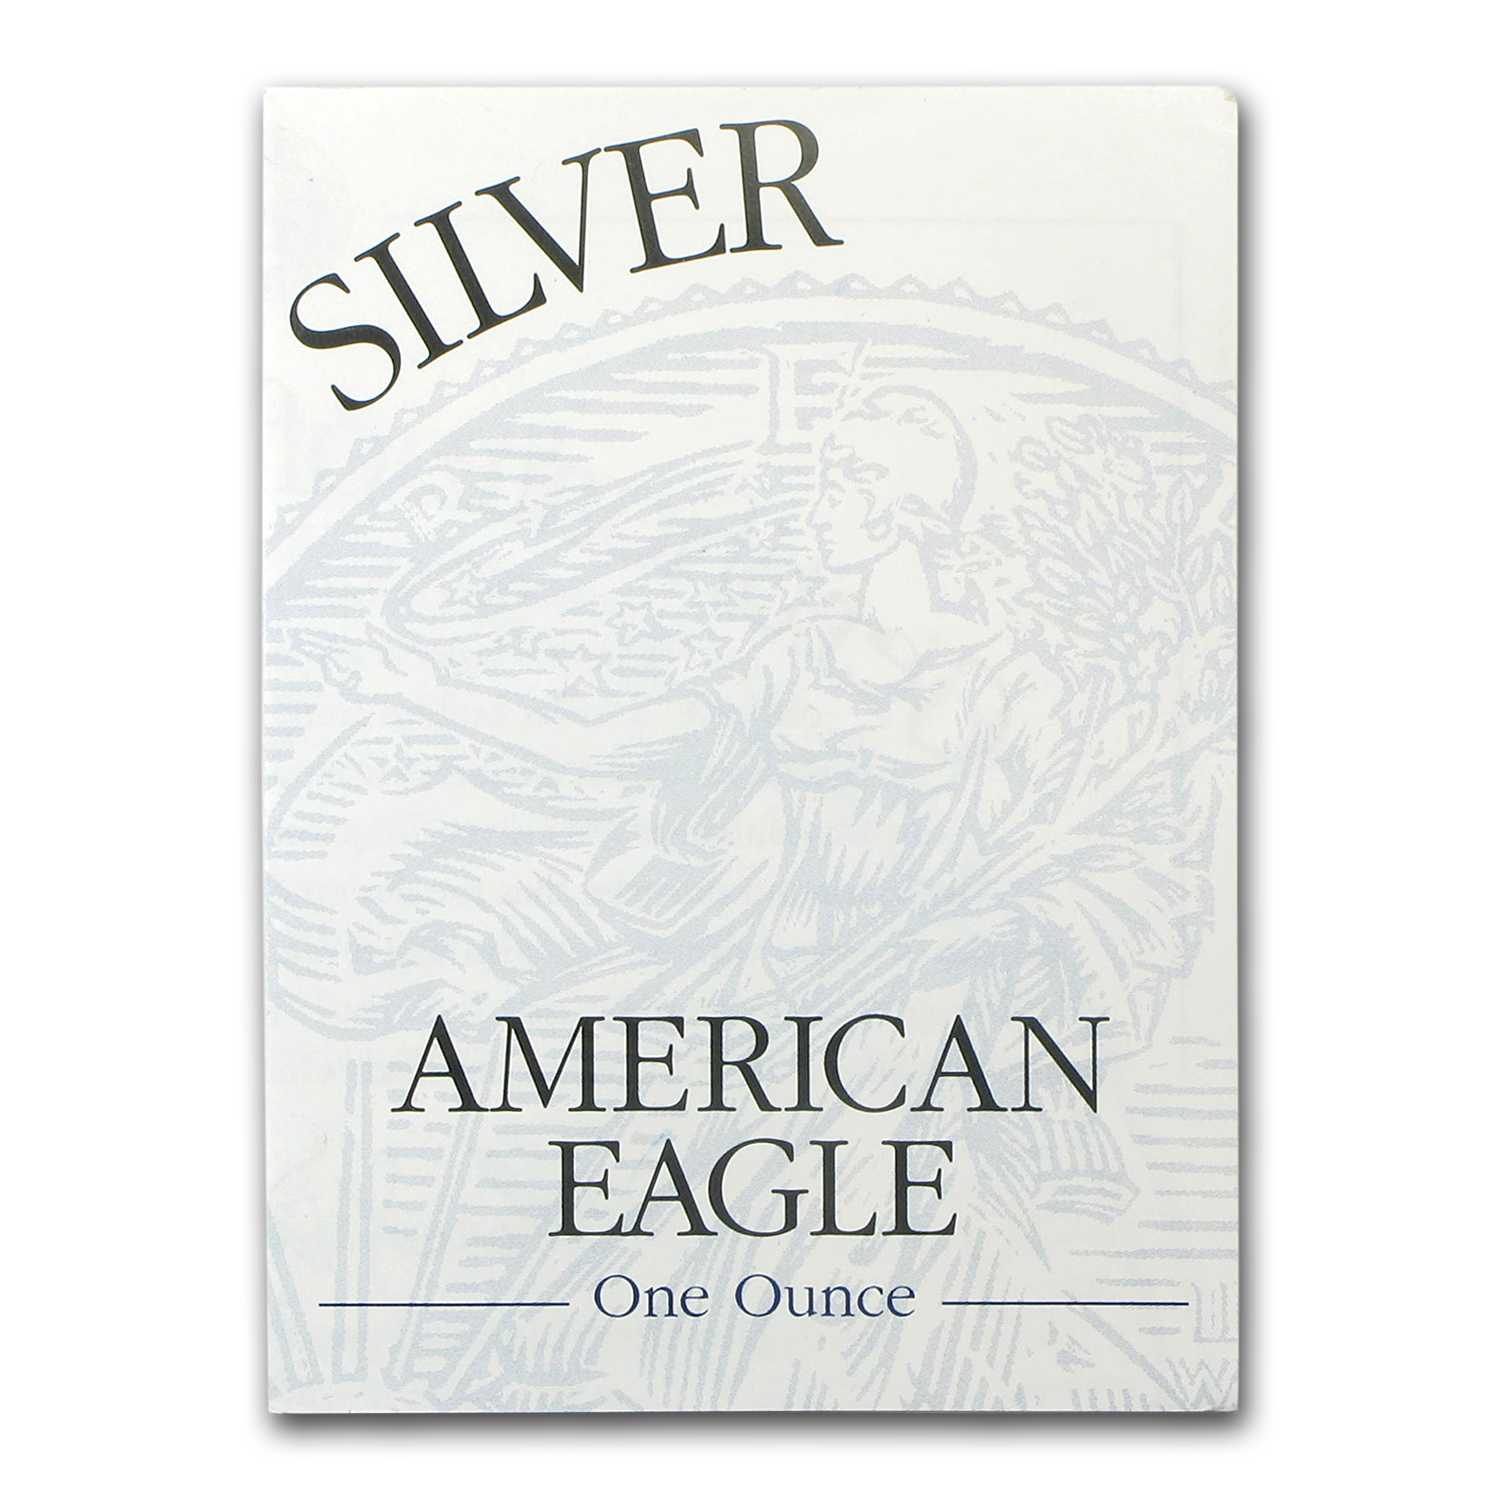 COA - 2003 US Mint 1 oz Silver American Eagle (Proof)